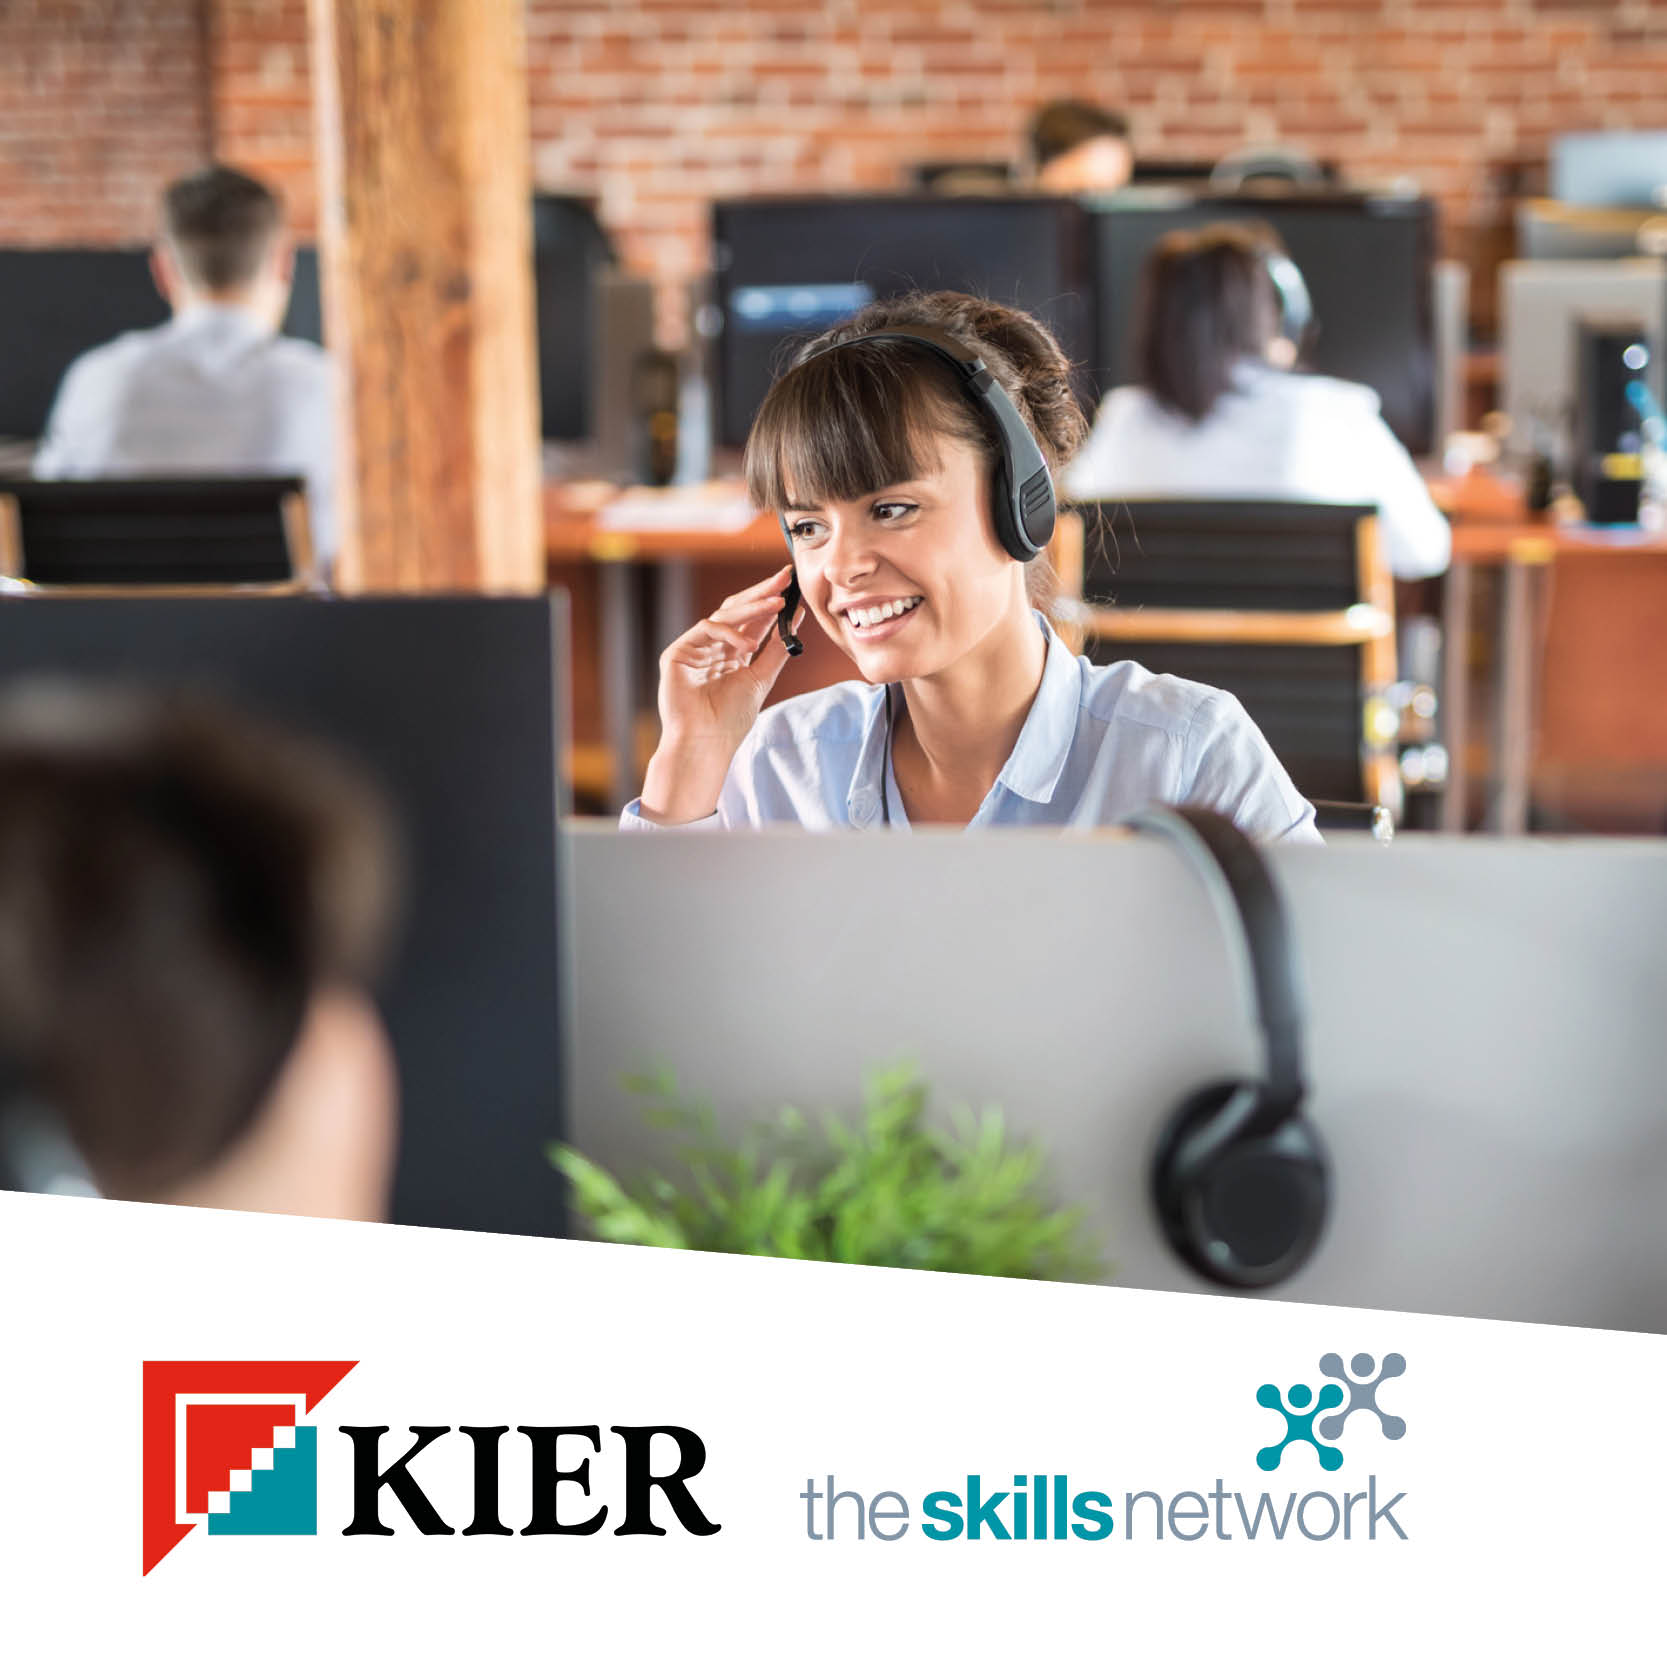 Enhancing Customer Service Skills – The Skills Network and Kier's Approach to Transformative Workforce Development